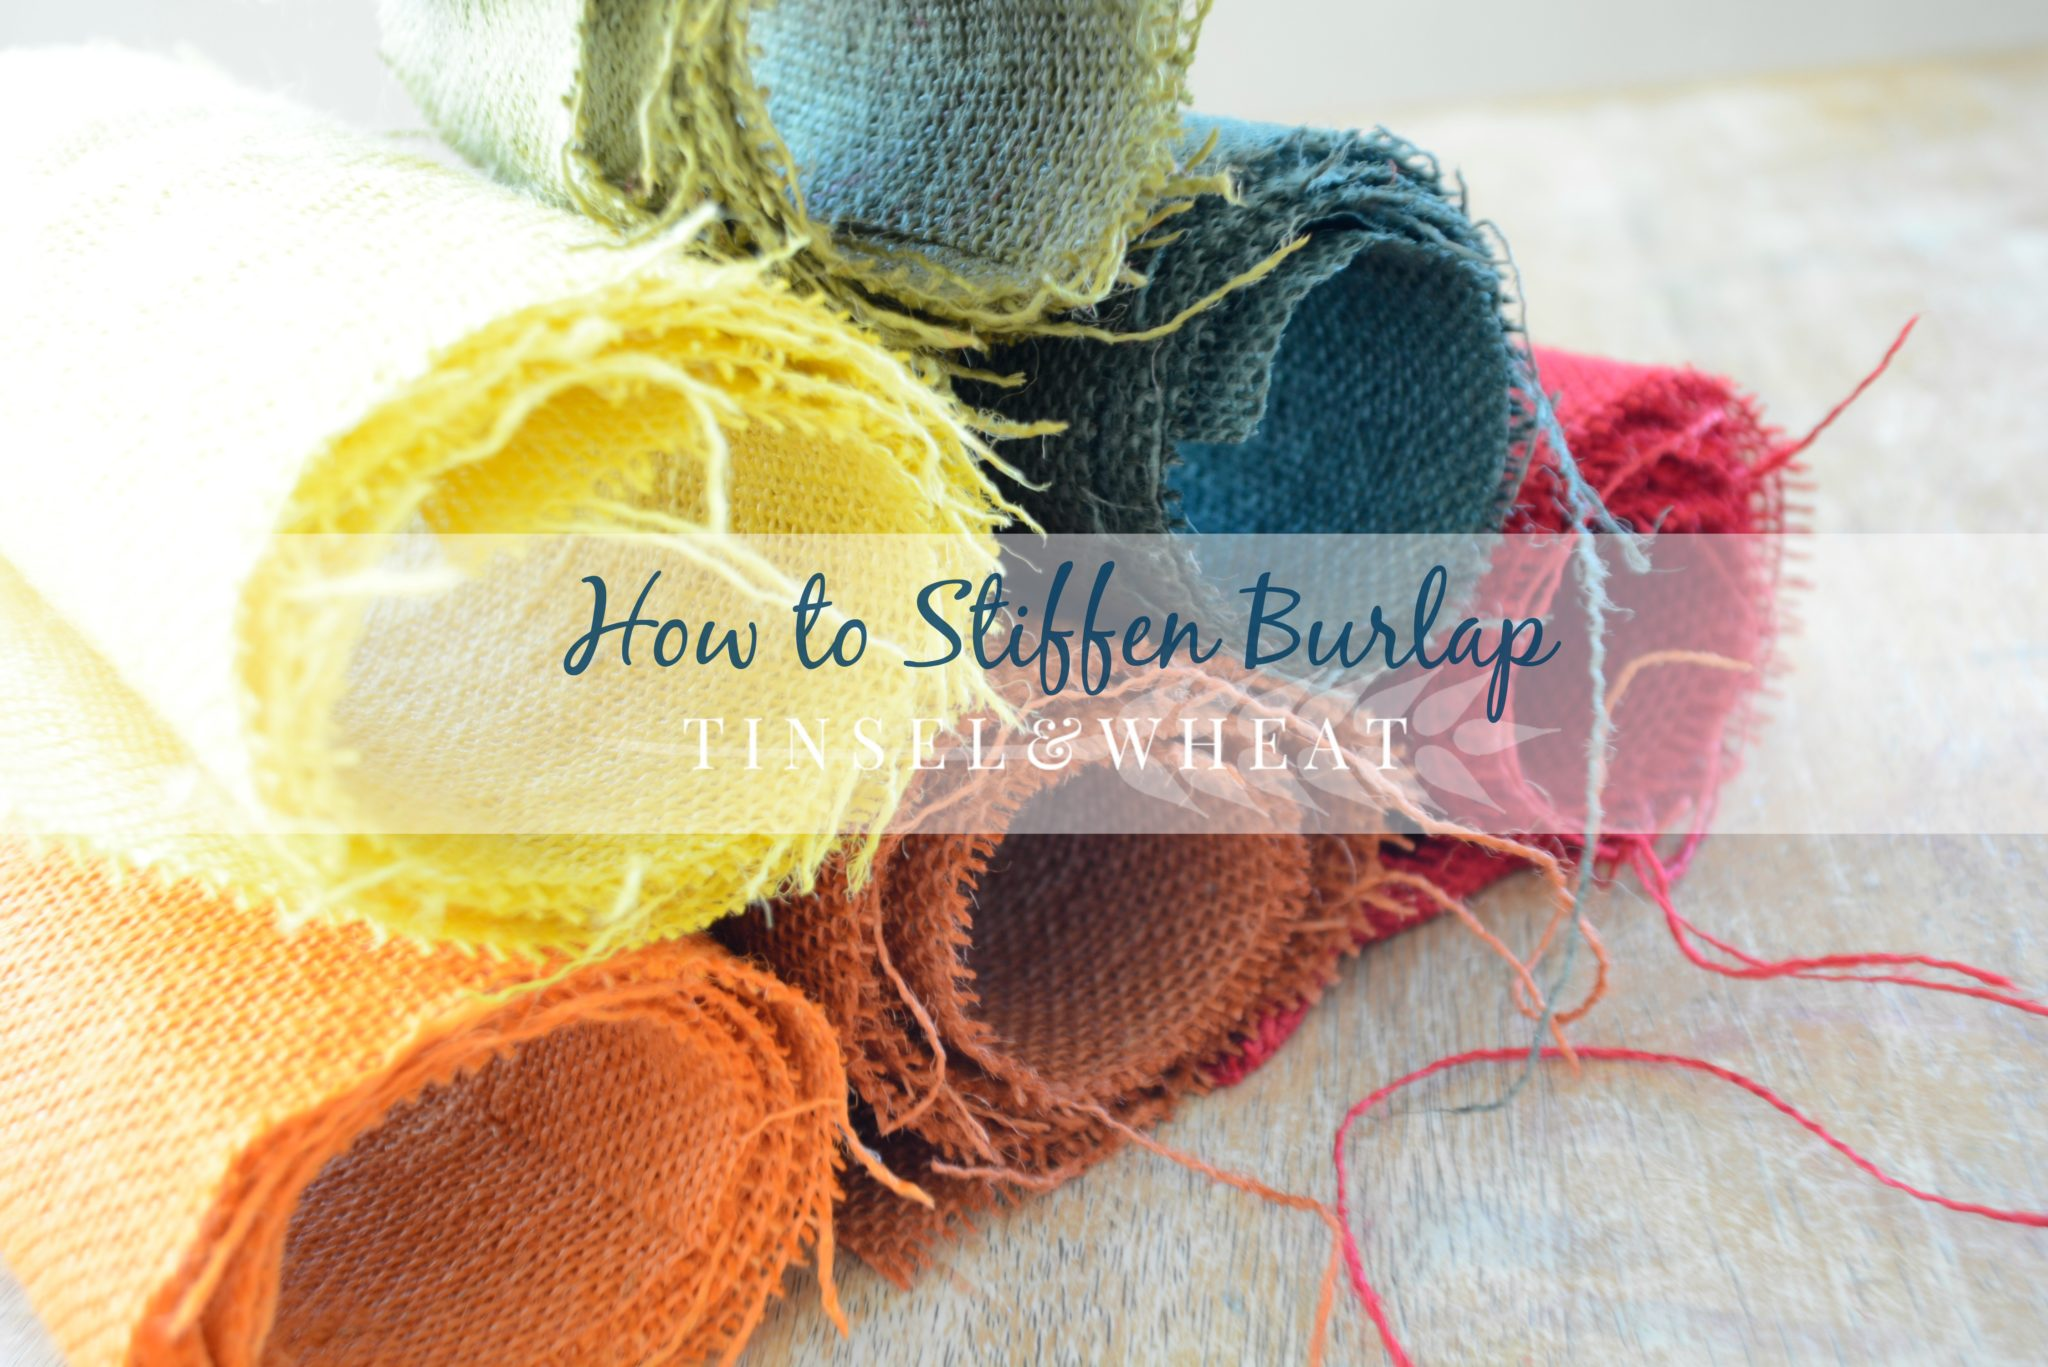 How to Stiffen Burlap by Tinsel & Wheat